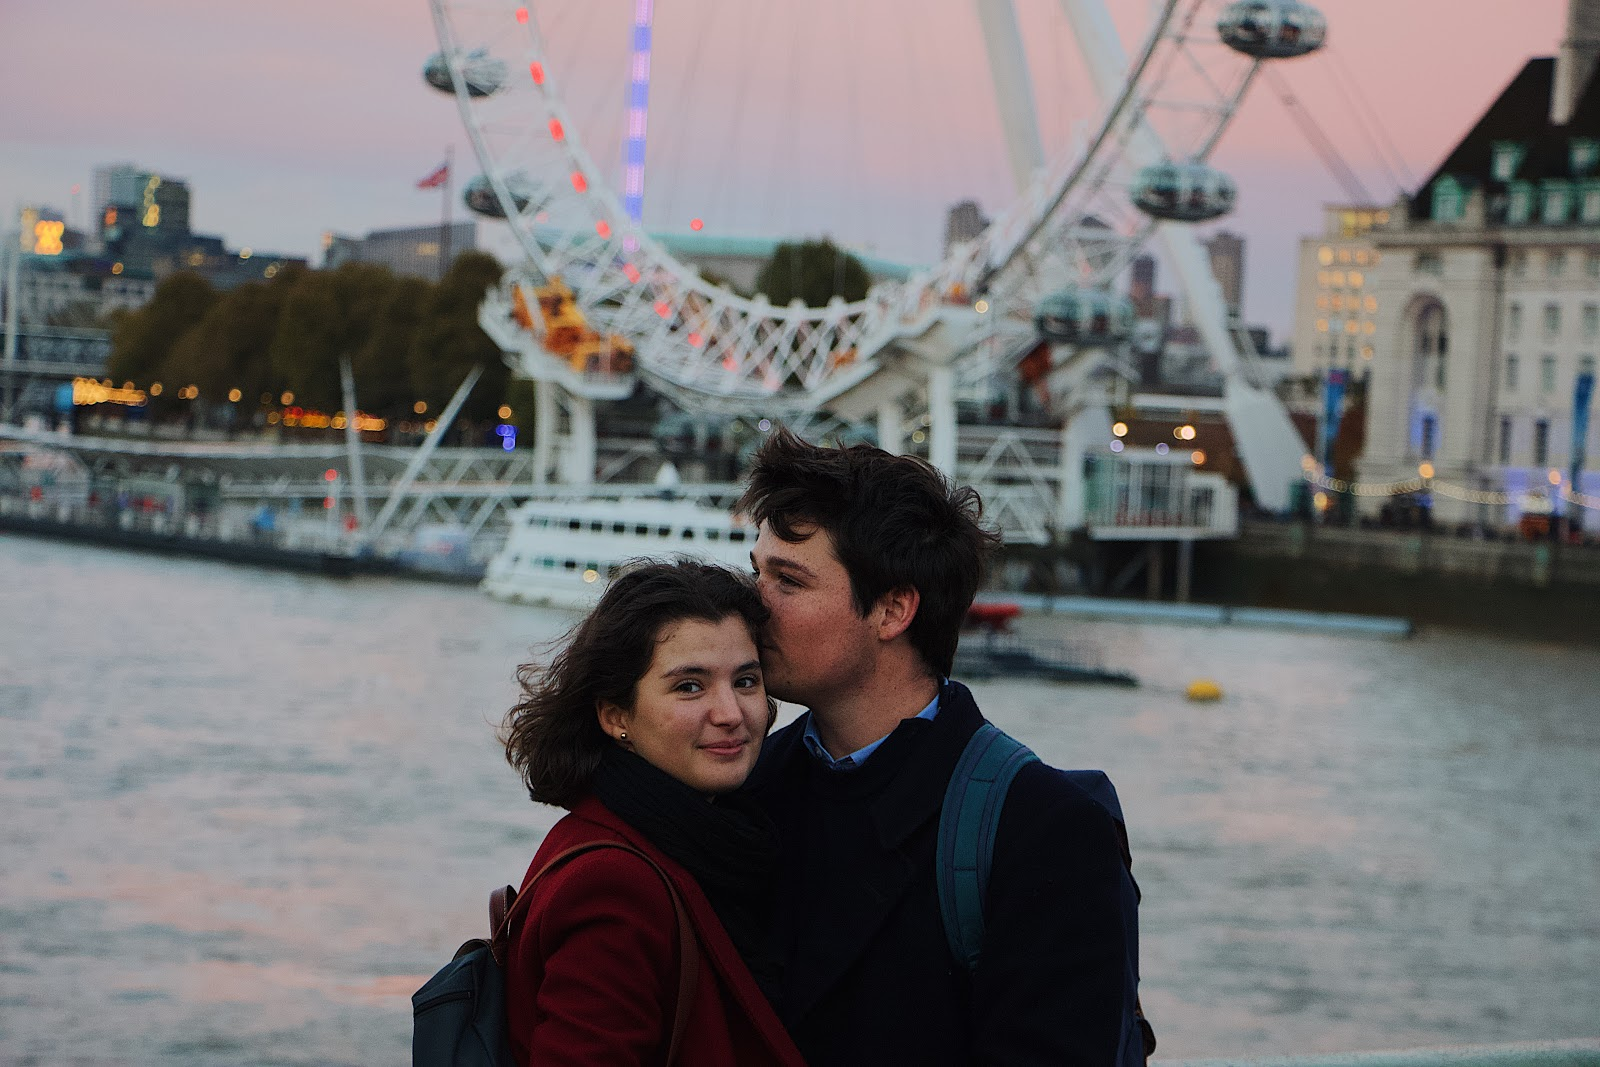 a man kisses a woman's head as they pose together on a pier